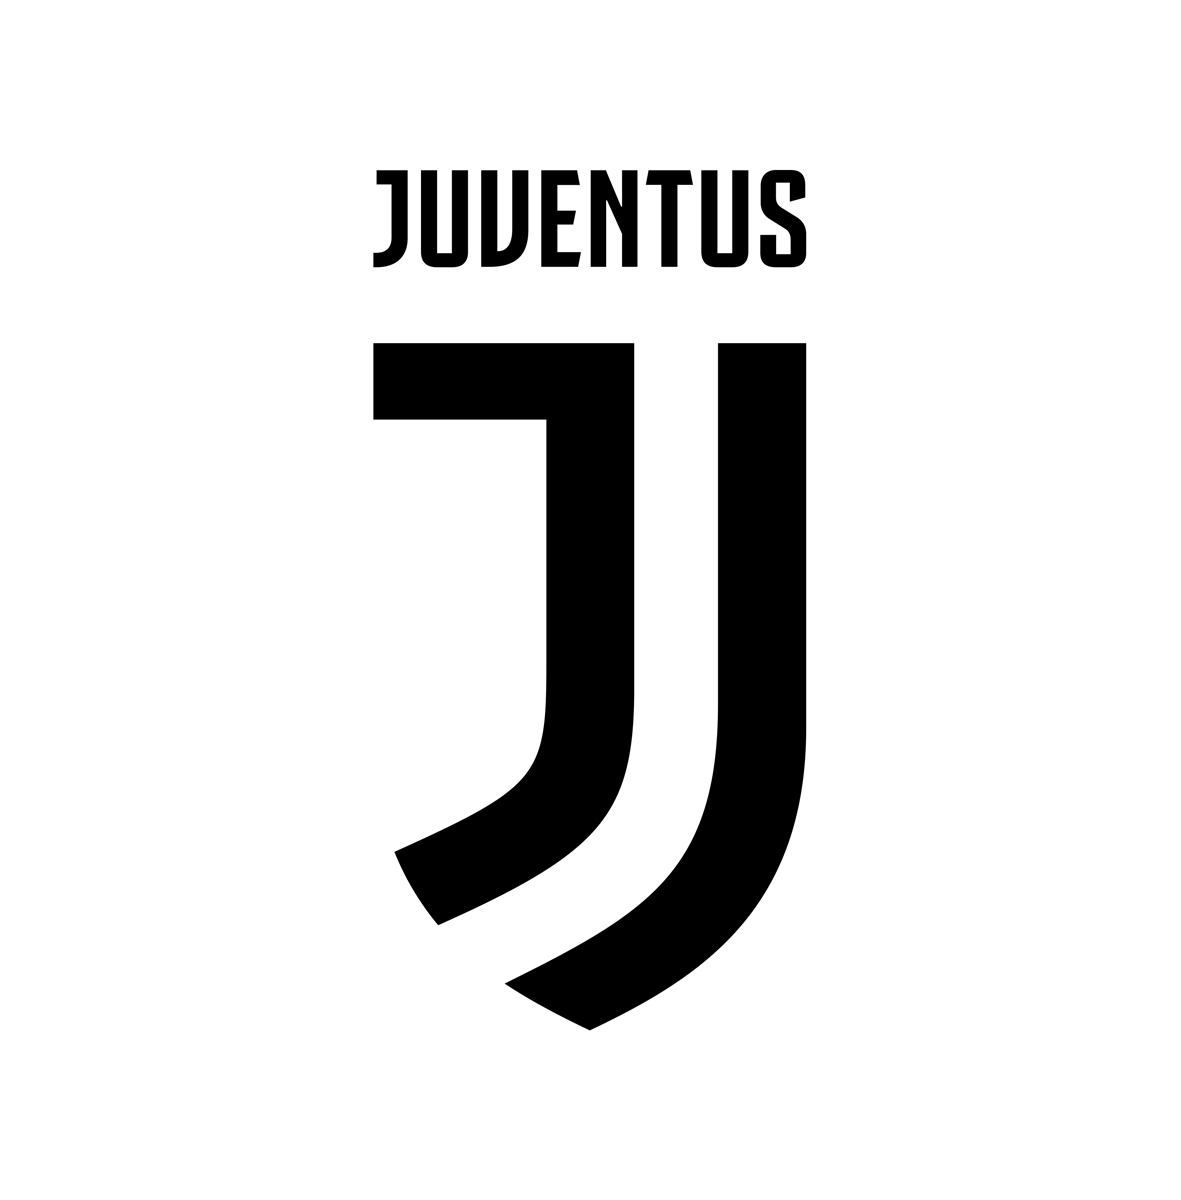 juventus launch new logo to go beyond football will it take them there creative review juventus launch new logo to go beyond